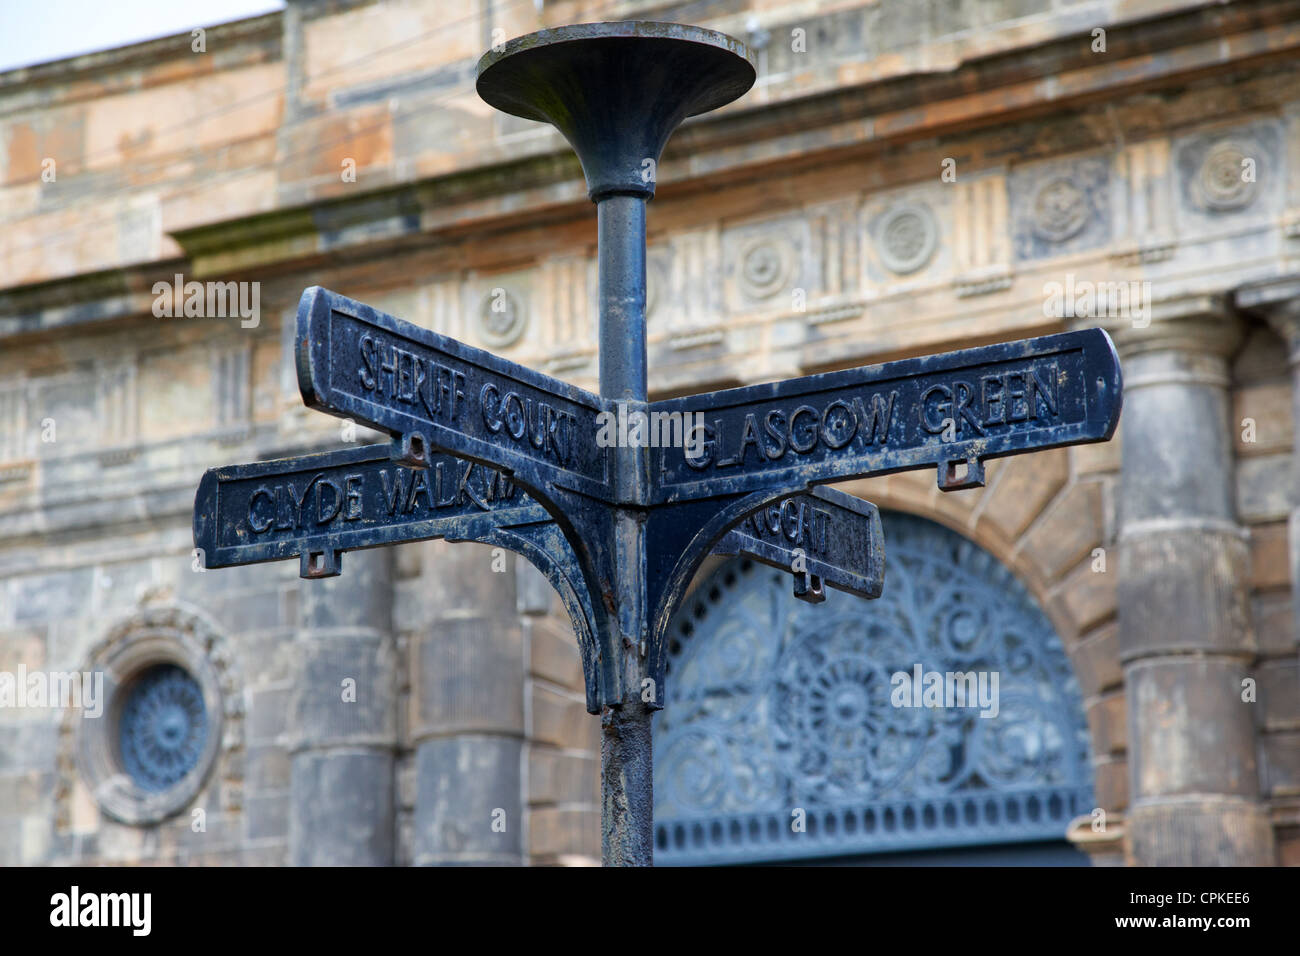 old metal street signs in merchant city glasgow scotland - Stock Image